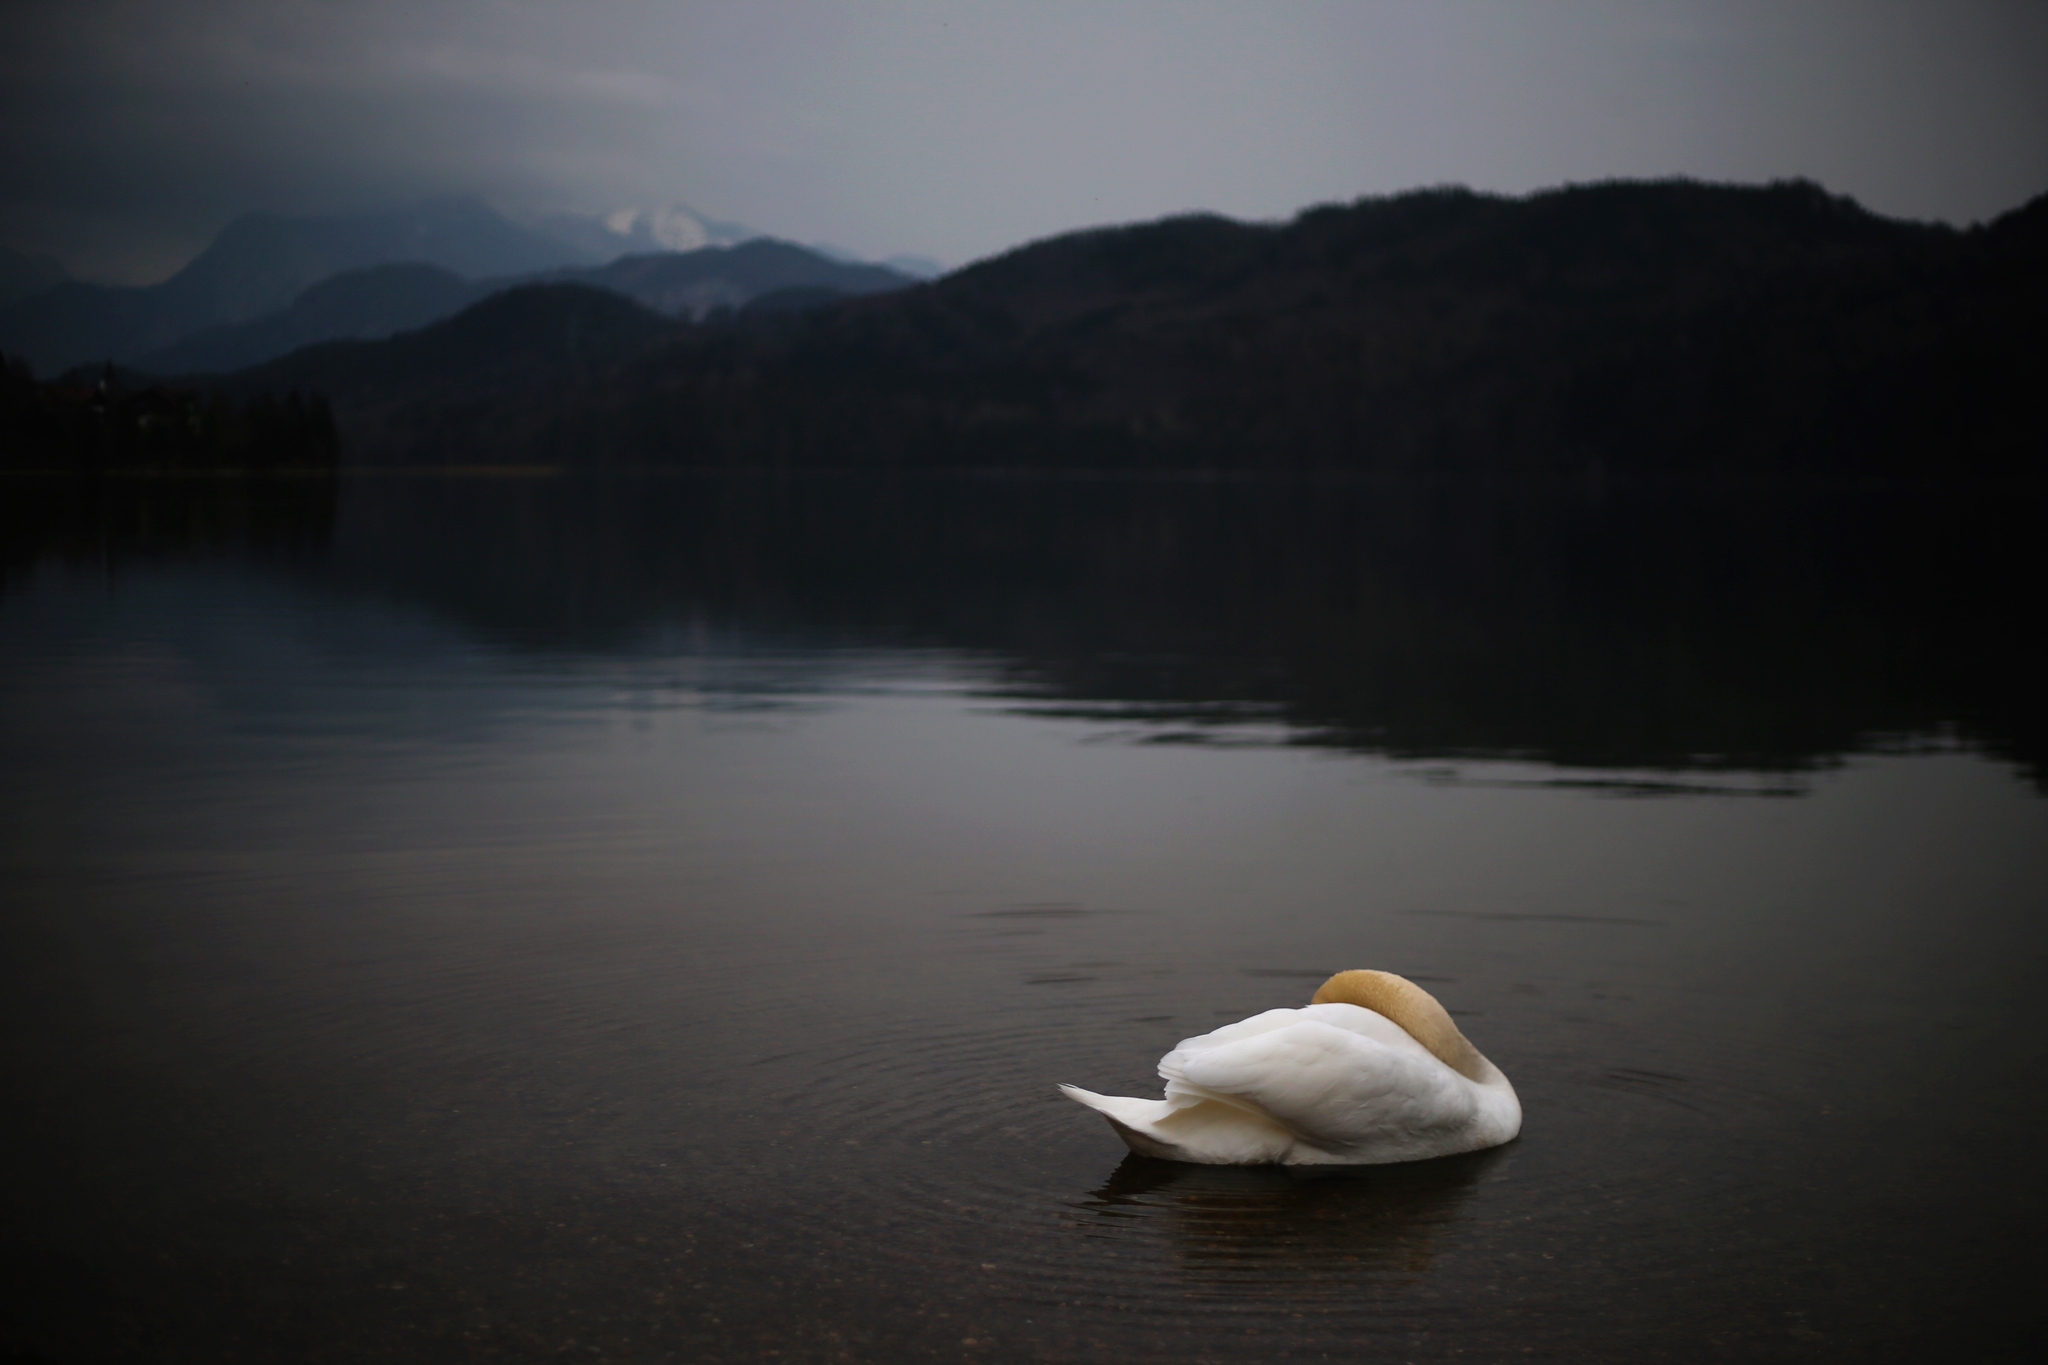 In this picture taken Tuesday evening, April 5, 2016, a swan floats on lake Weissensee near Fuessen, southern Germany. (Karl-Josef Hildenbrand/dpa via AP)